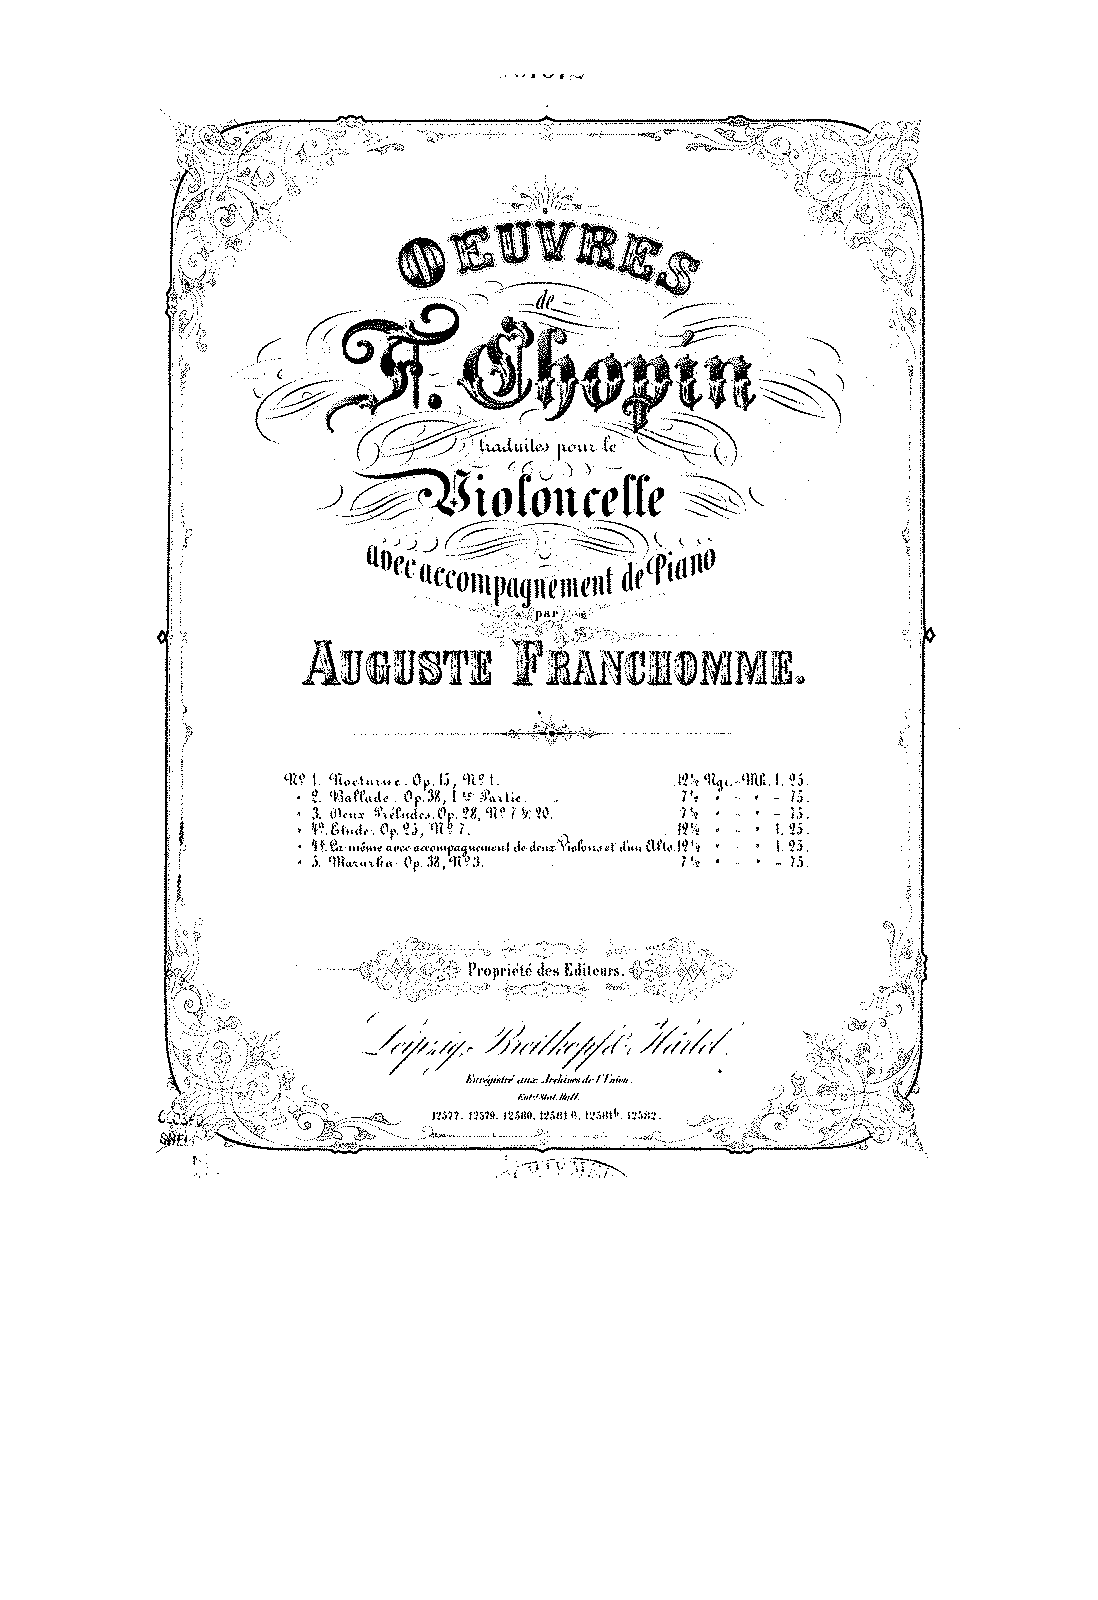 PMLP01970-Chopin - Etude Op25 No7 for Cello and Piano (Franchomme) score.pdf